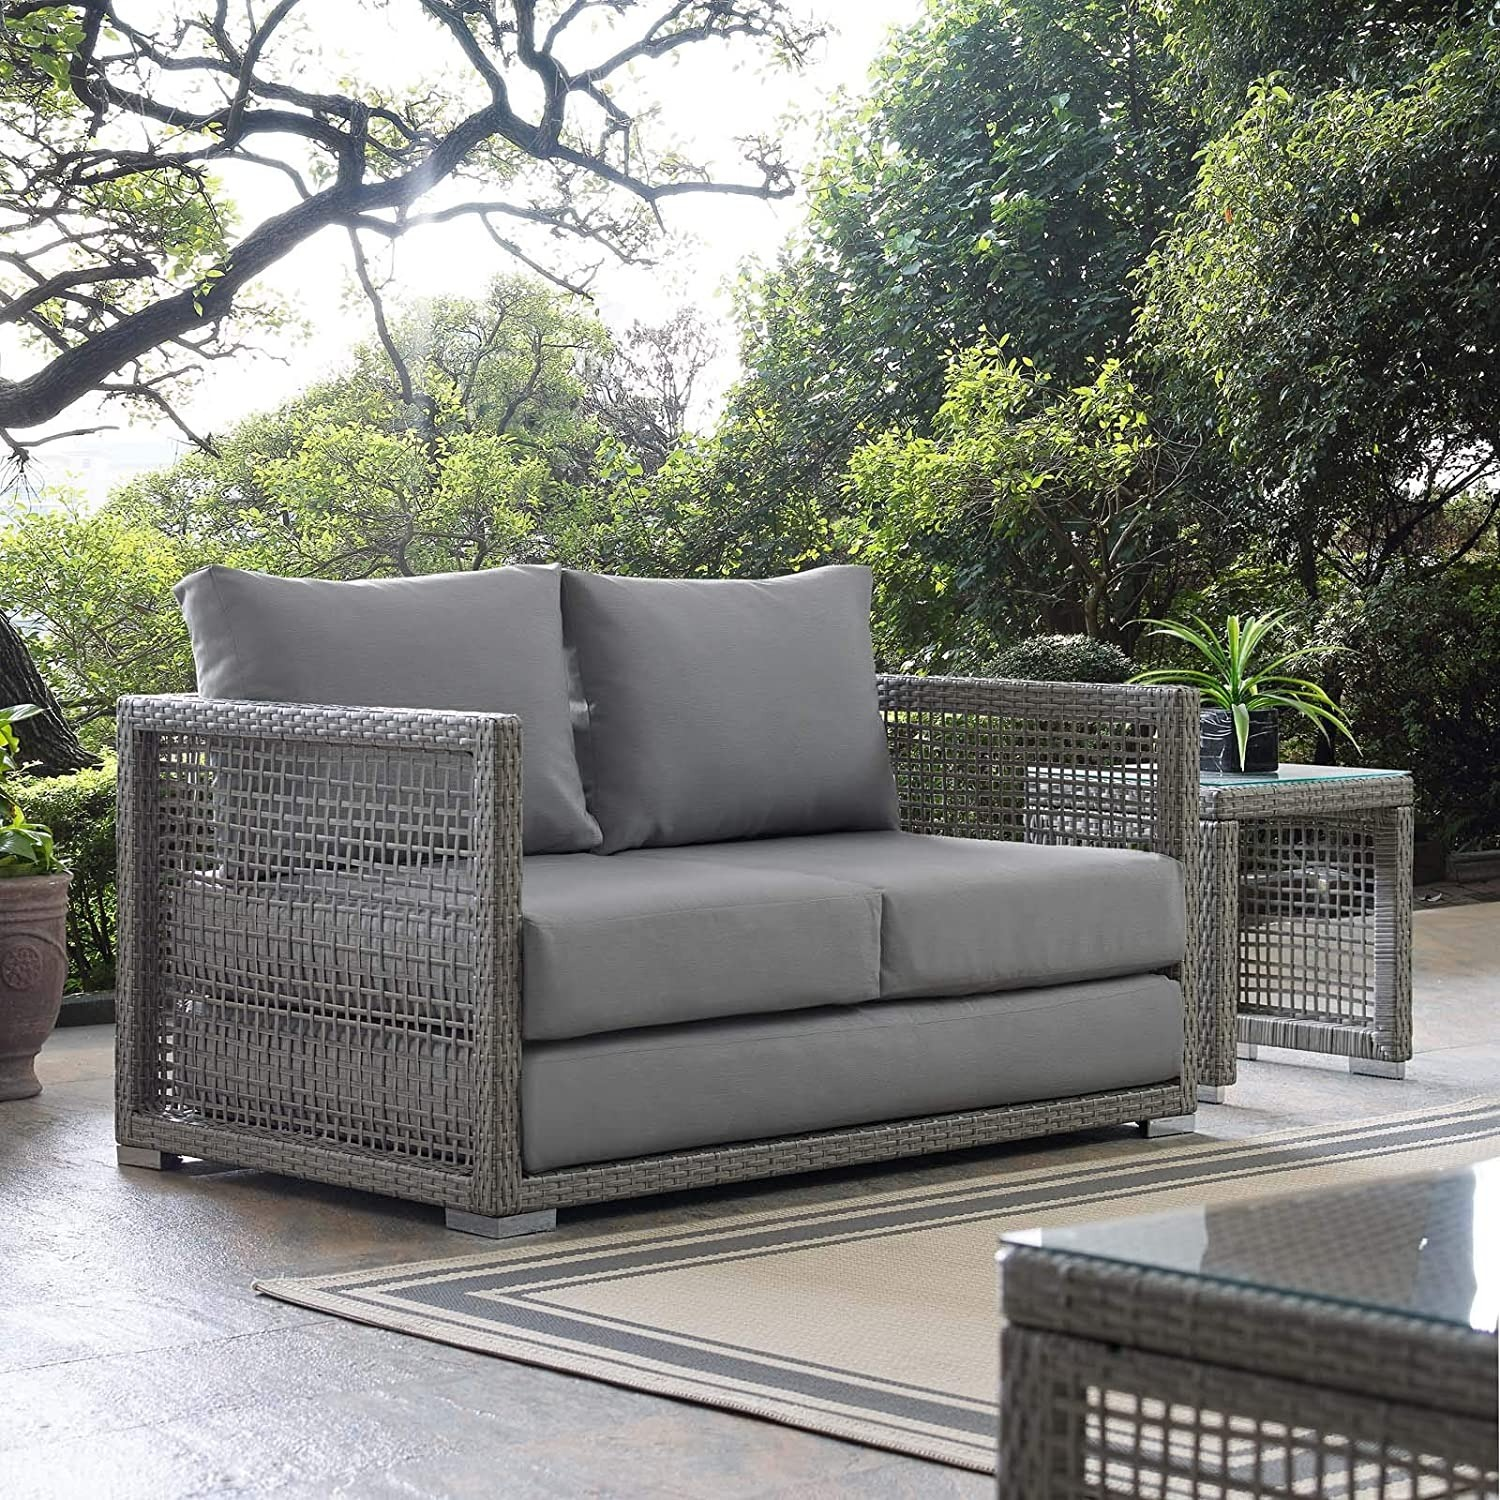 Outdoor Loveseat In Gray Rattan Weave Frame - image-4